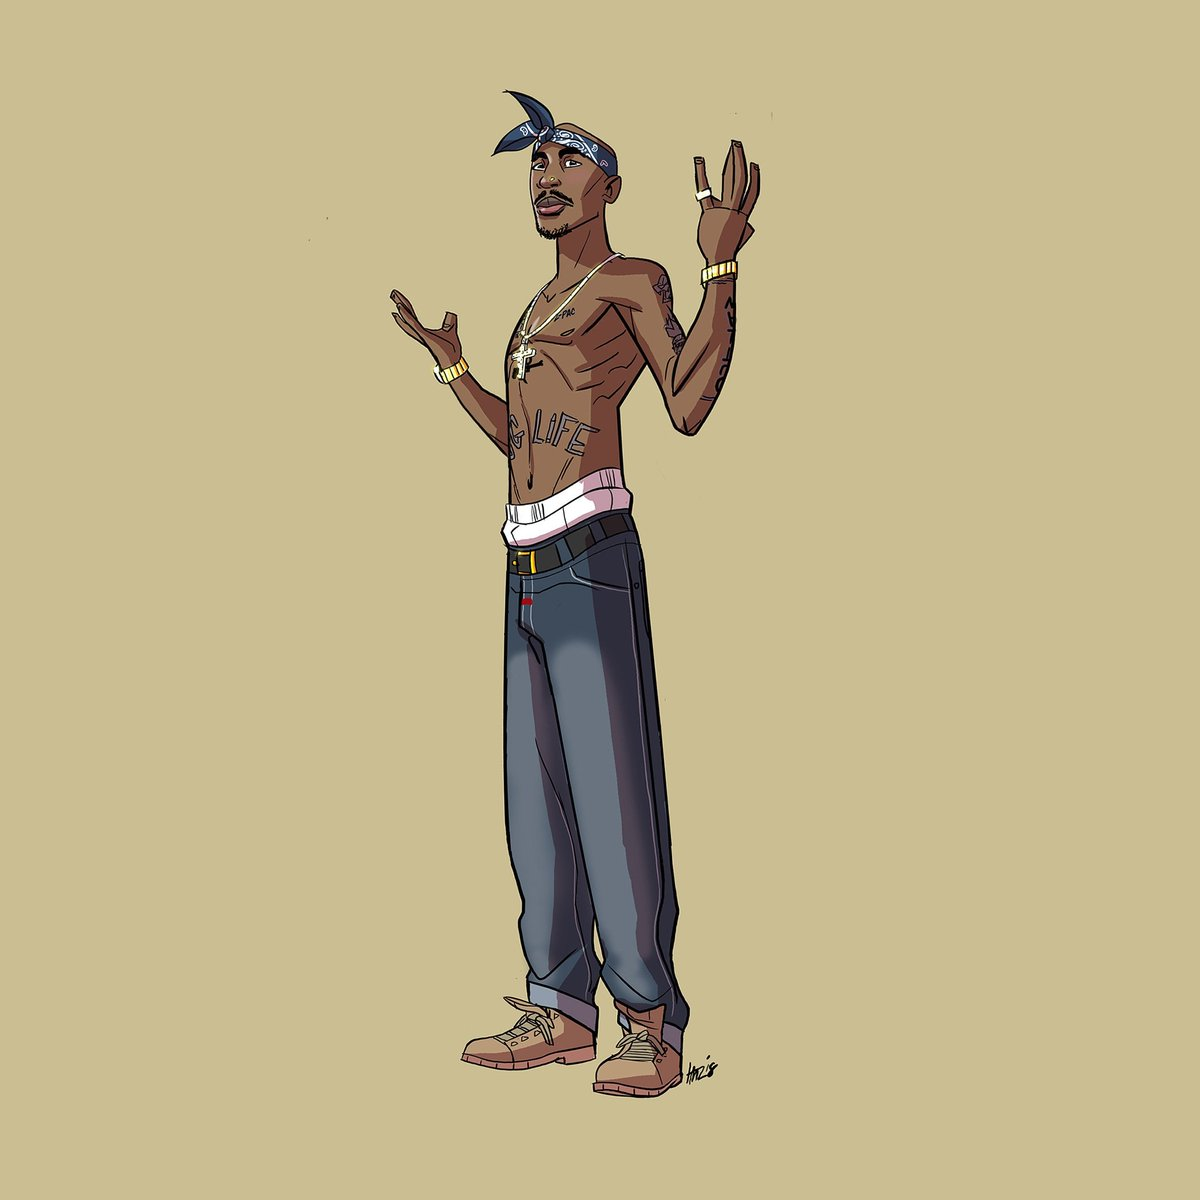 #tupac #2pac #cartoons #comics #art #characters #workwhenpeoplearesleeping #outherebustinmy@$$ #haventsleptpic.twitter.com/l4nMPmjZ7t